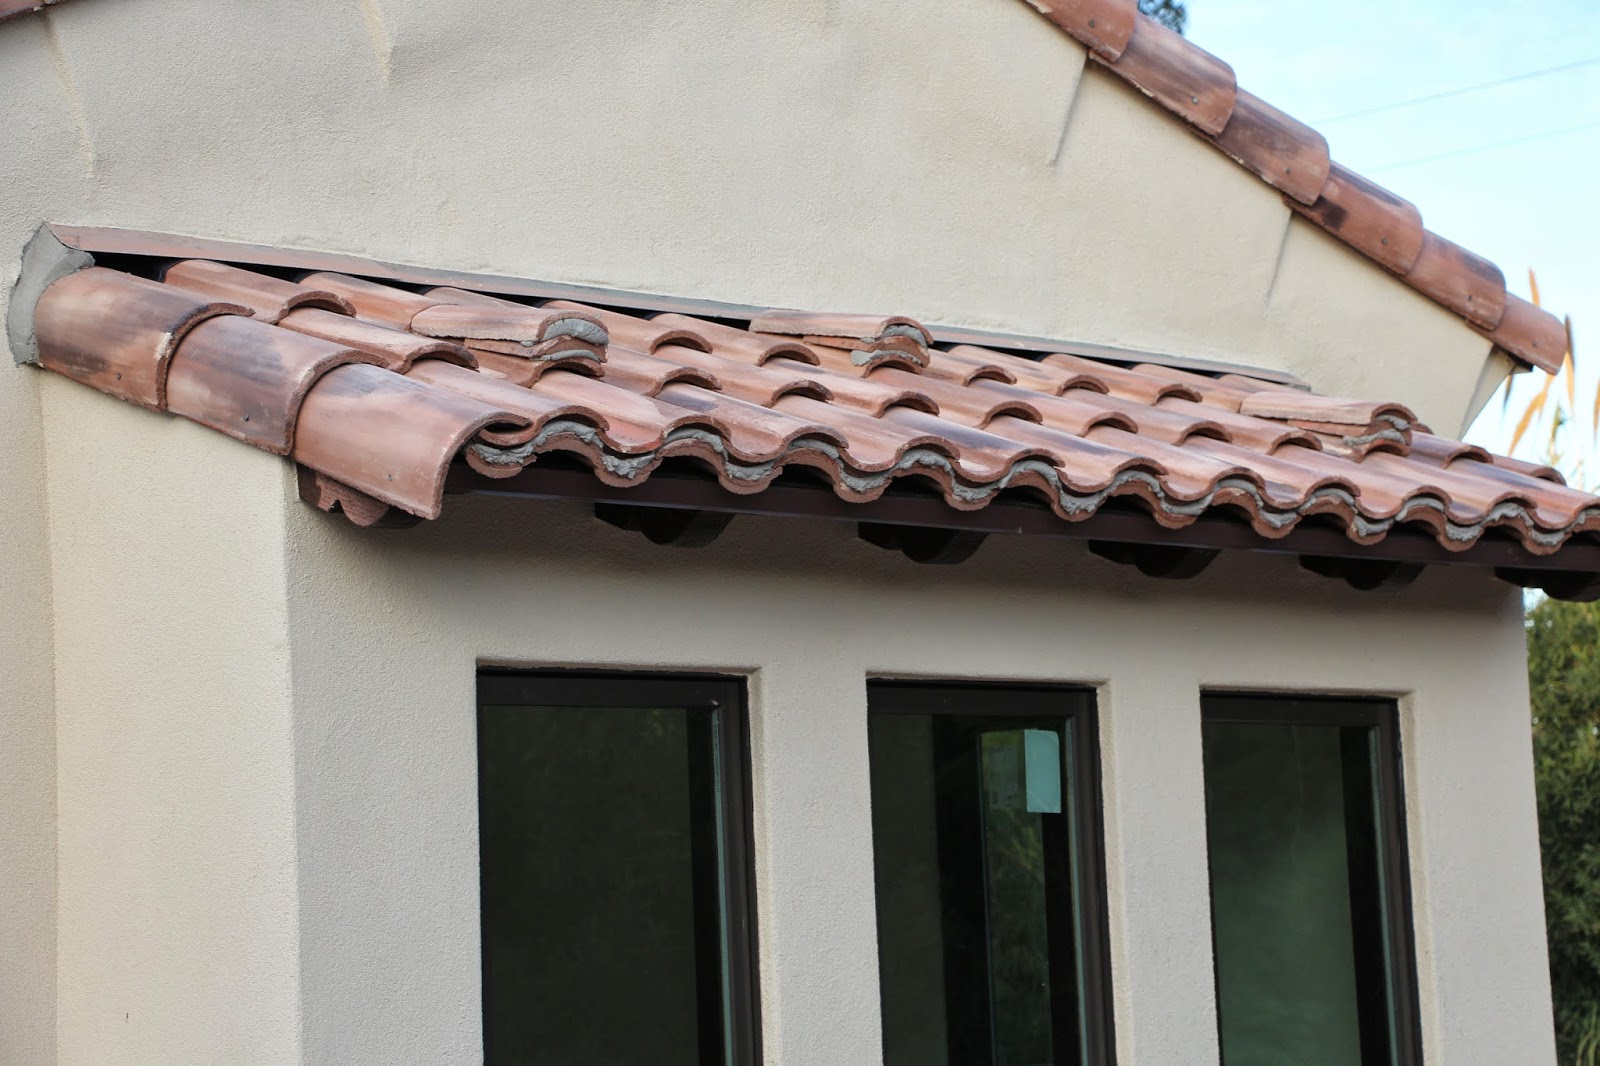 boosted tile roof, eagle roofing products, eagle roof tiles